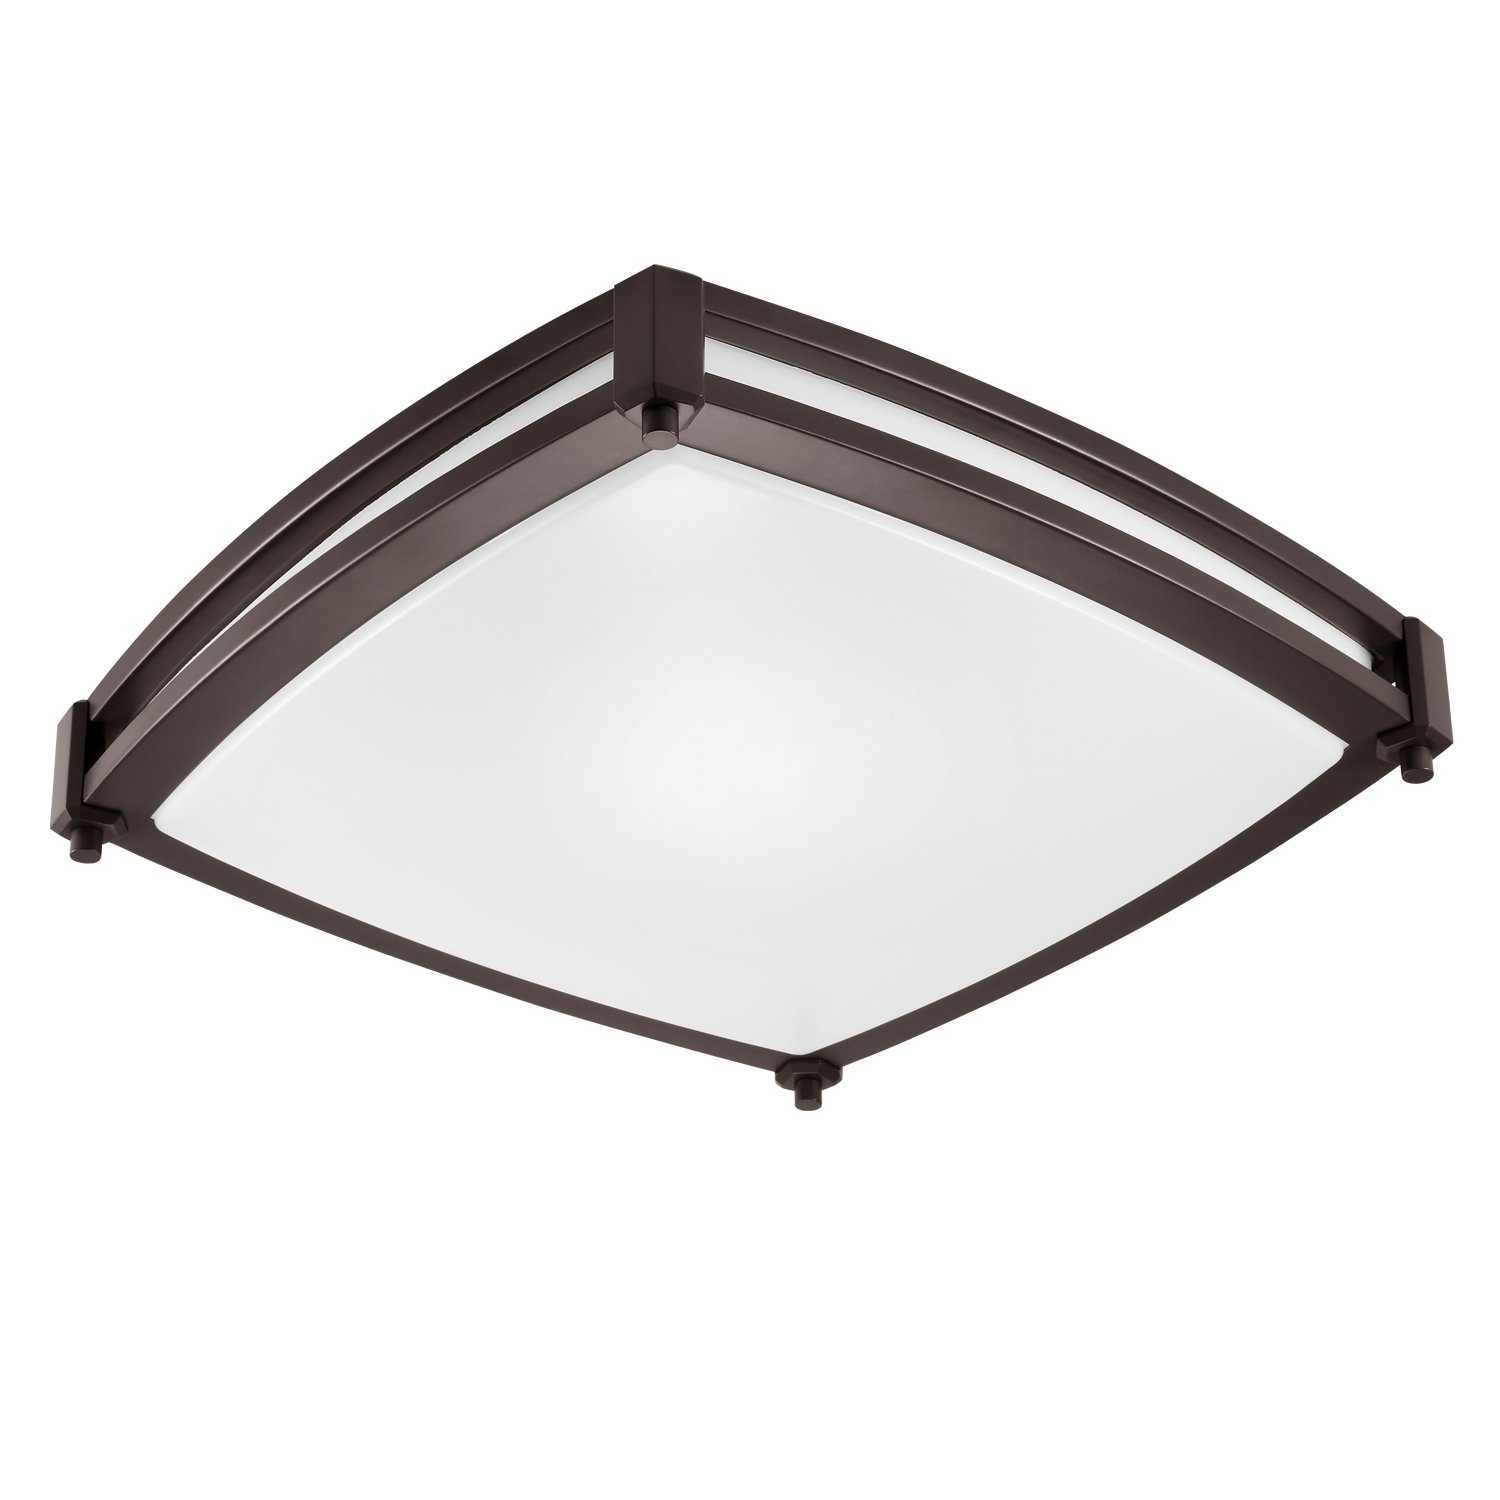 GetInLight LED Flush Mount Ceiling Light, 16-Inch, 25W(125W Equivalent), Bronze Finish, 3000K(Soft White), Dimmable, Square, Dry Location Rated, ETL Listed, ...